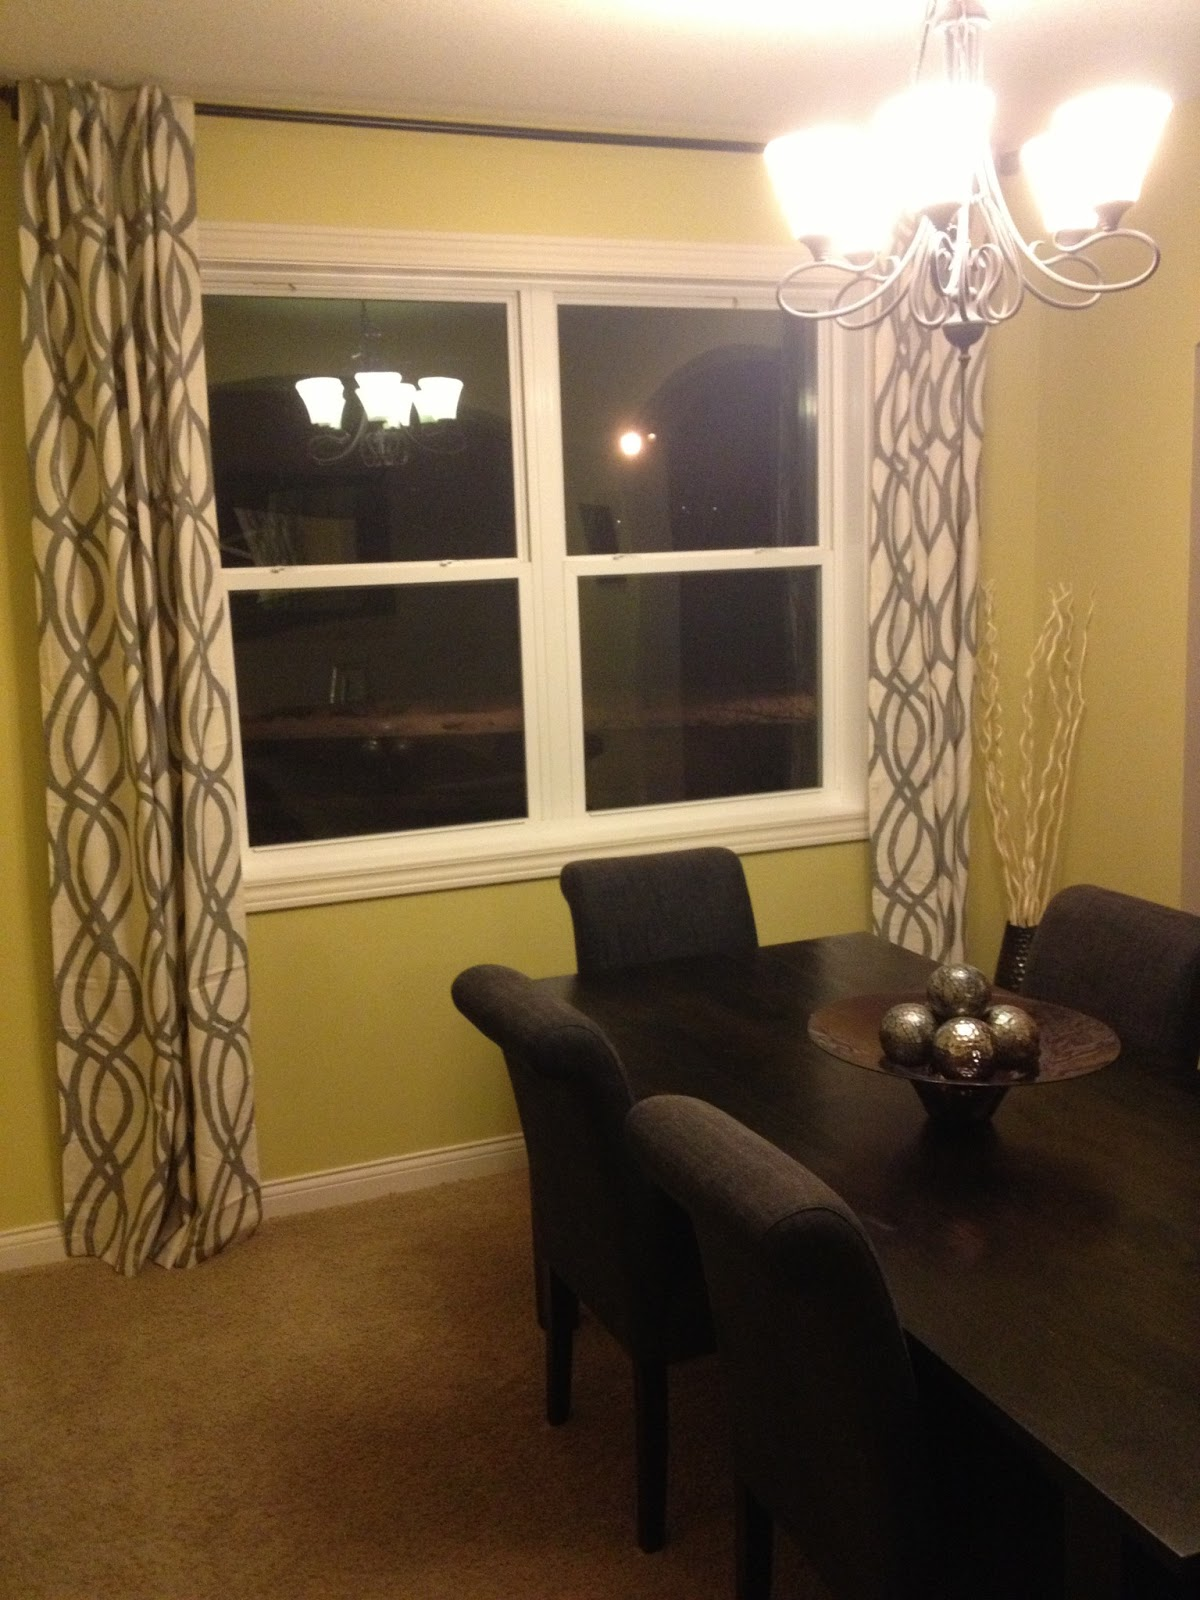 Our Styled Suburban Life: Dining Room Curtains on Dining Room Curtain Ideas  id=32080